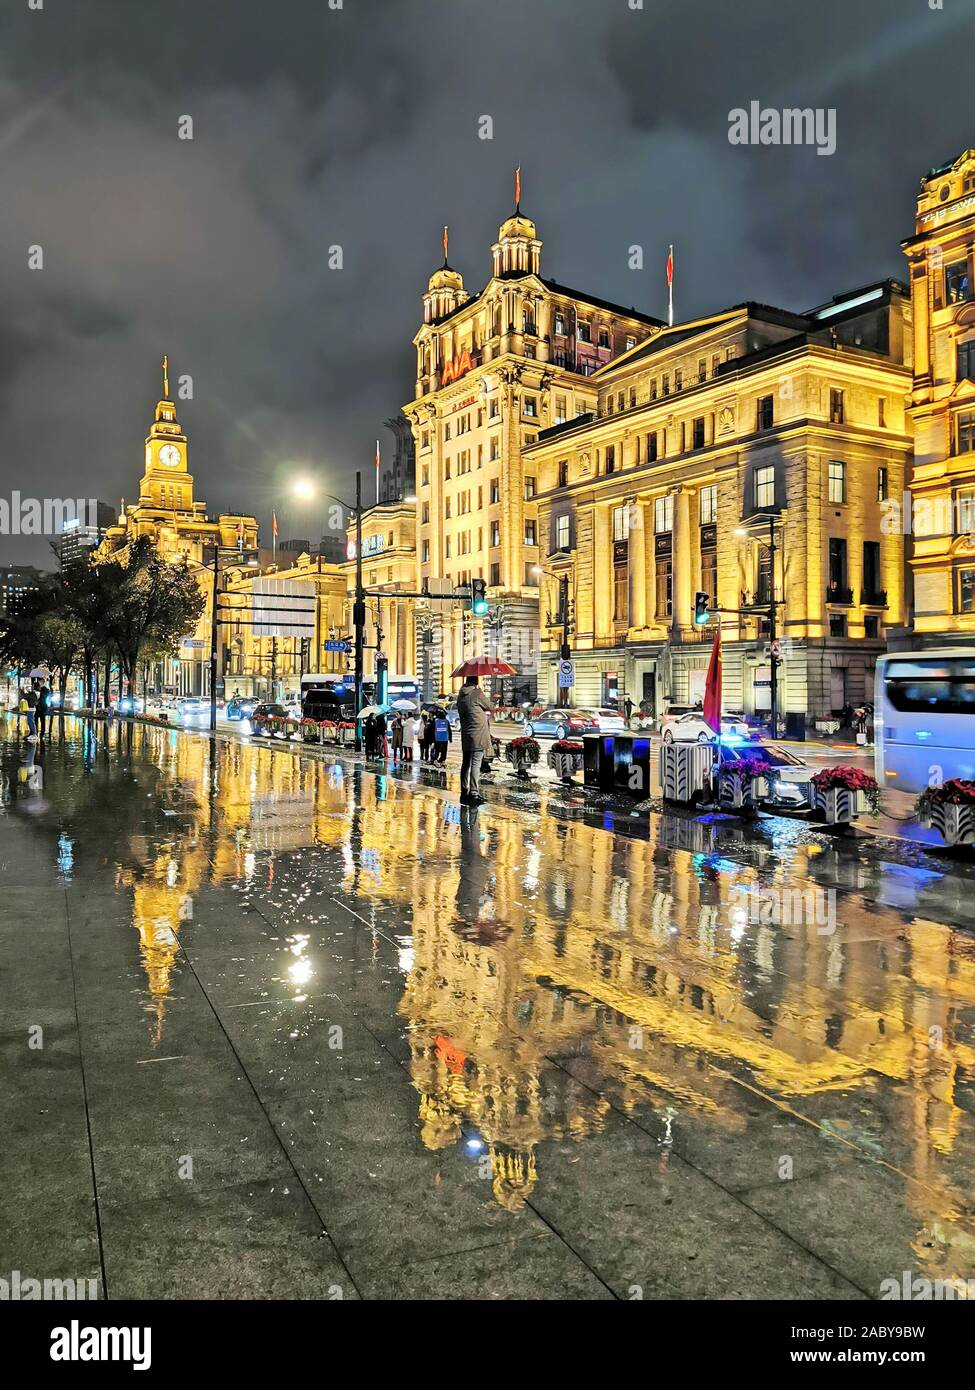 Night view of a reflection of the illuminated century-old western-style buildings on the wet ground in the rain at the promenade along the Bund in Sha Stock Photo